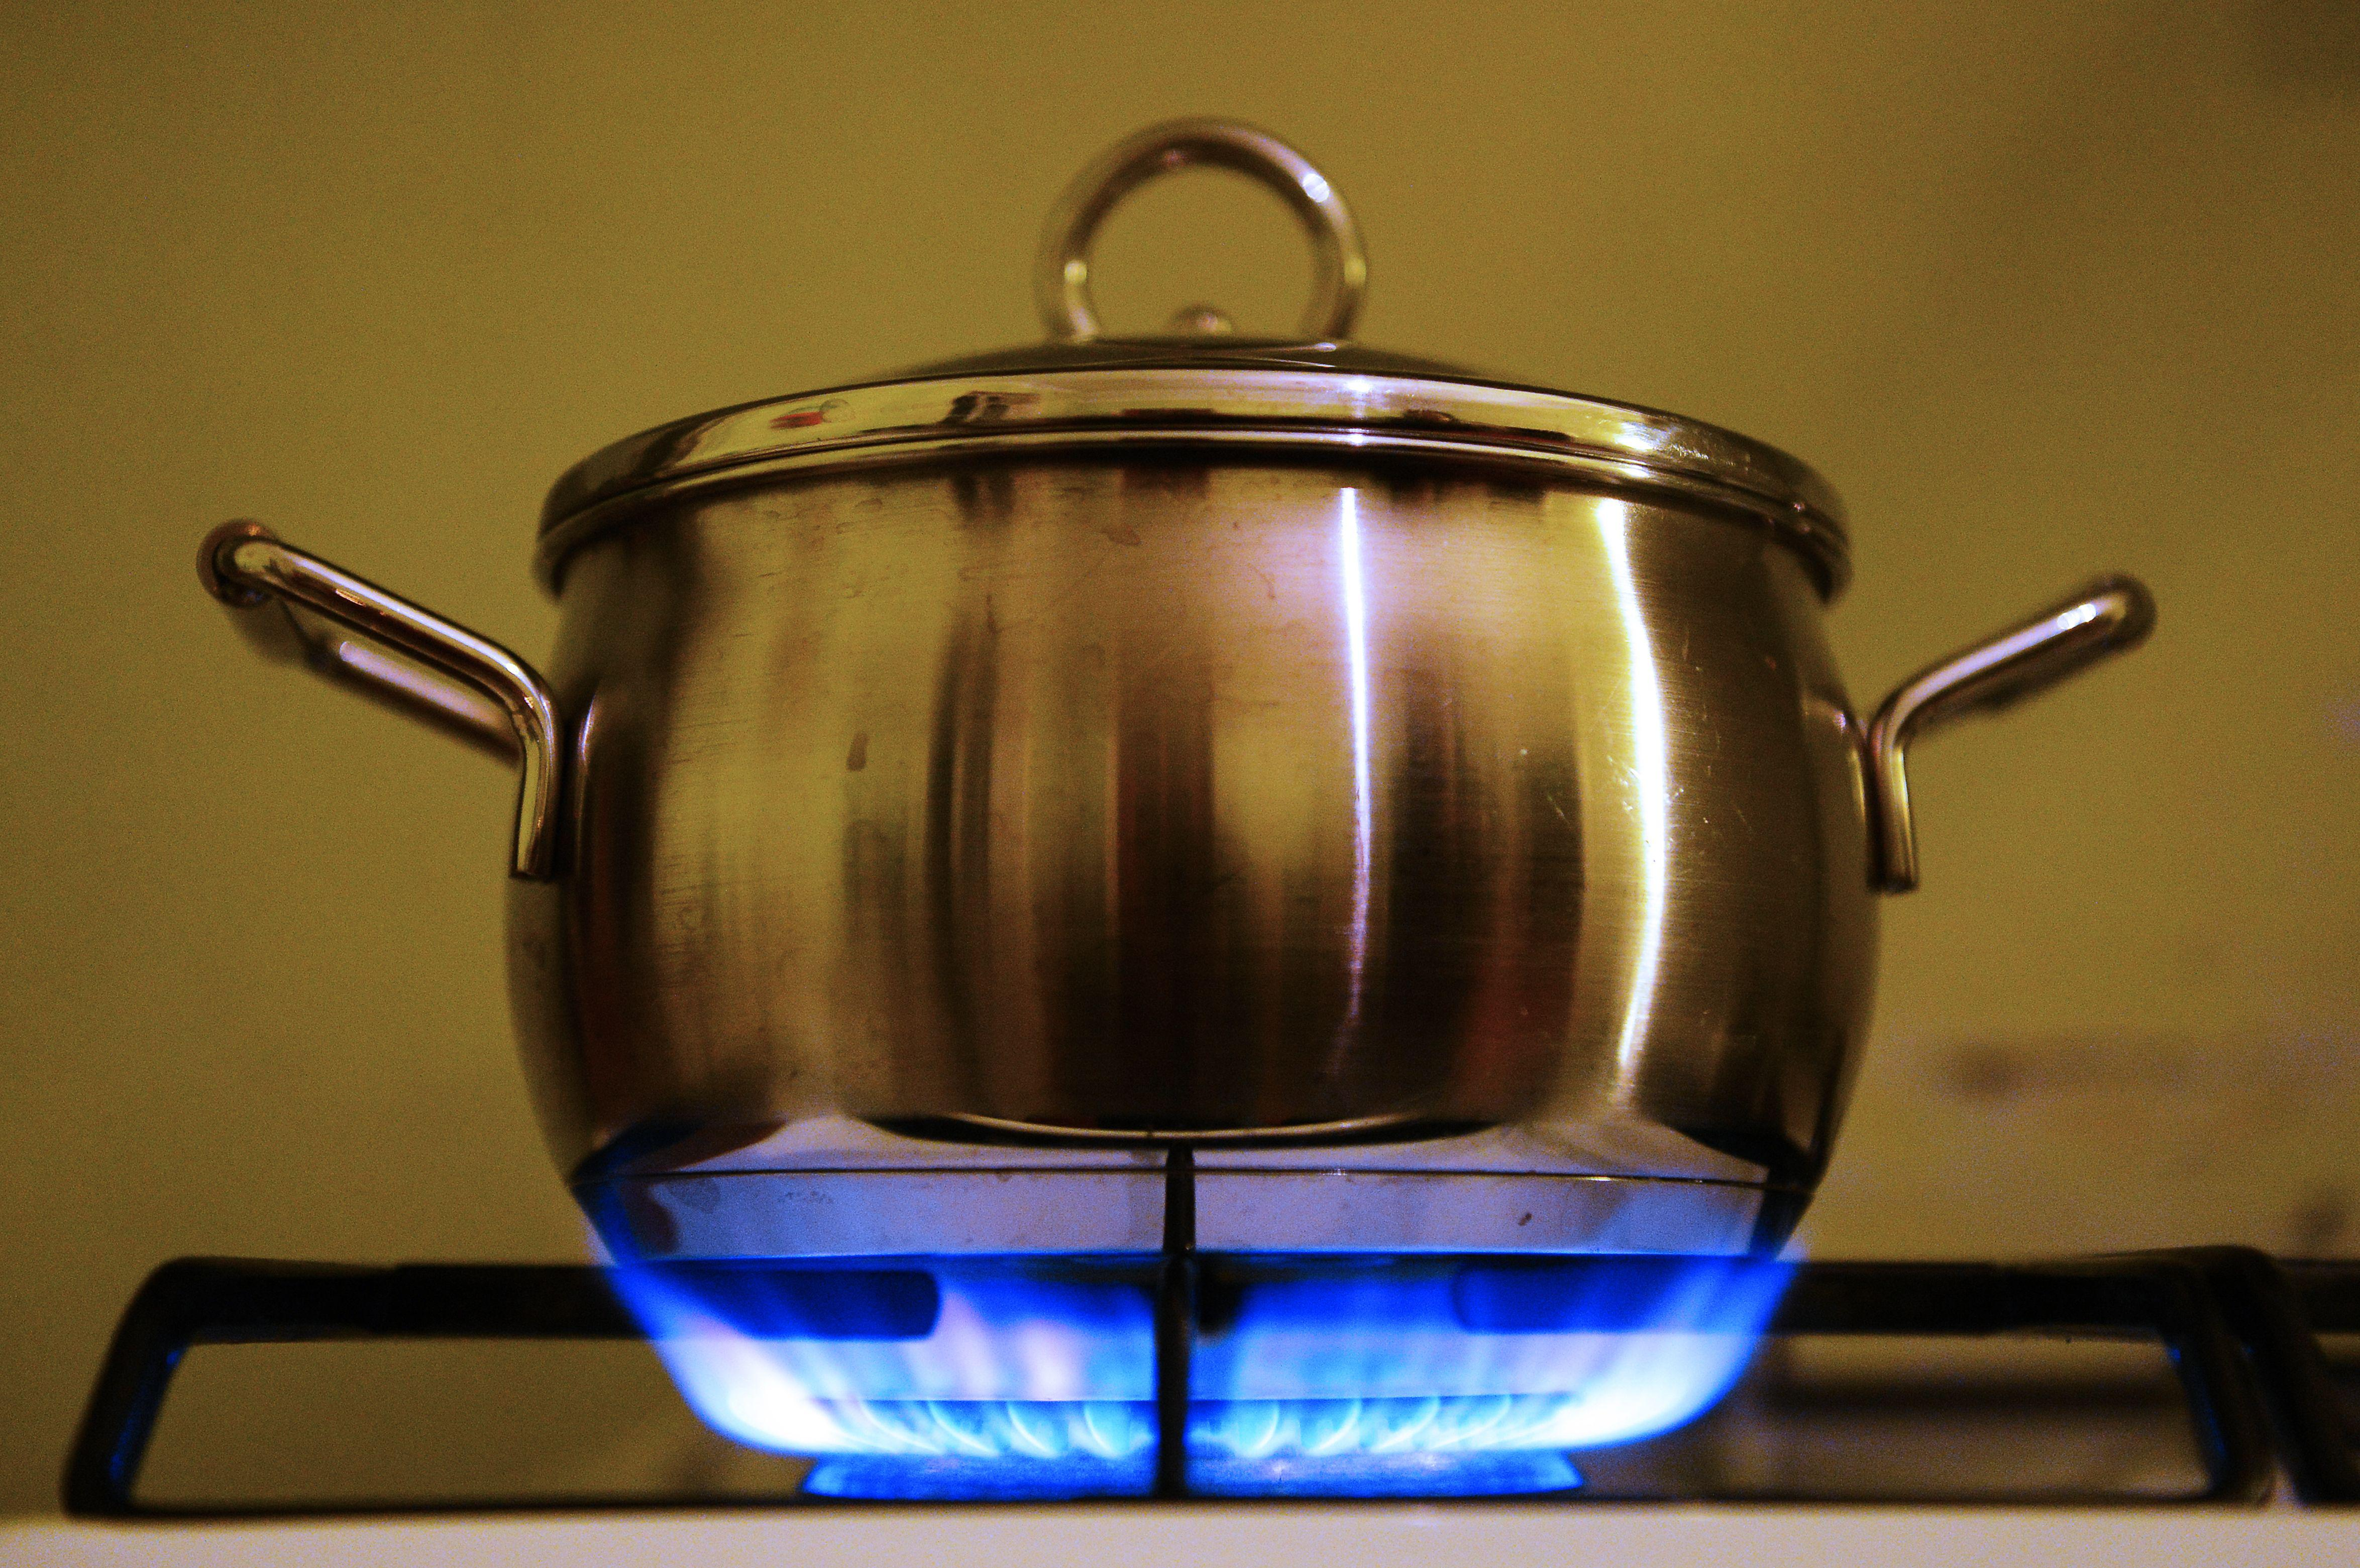 A picture taken on December 11, 2012 in Chisseaux, western France shows a stockpot on a flame of a gas stove.